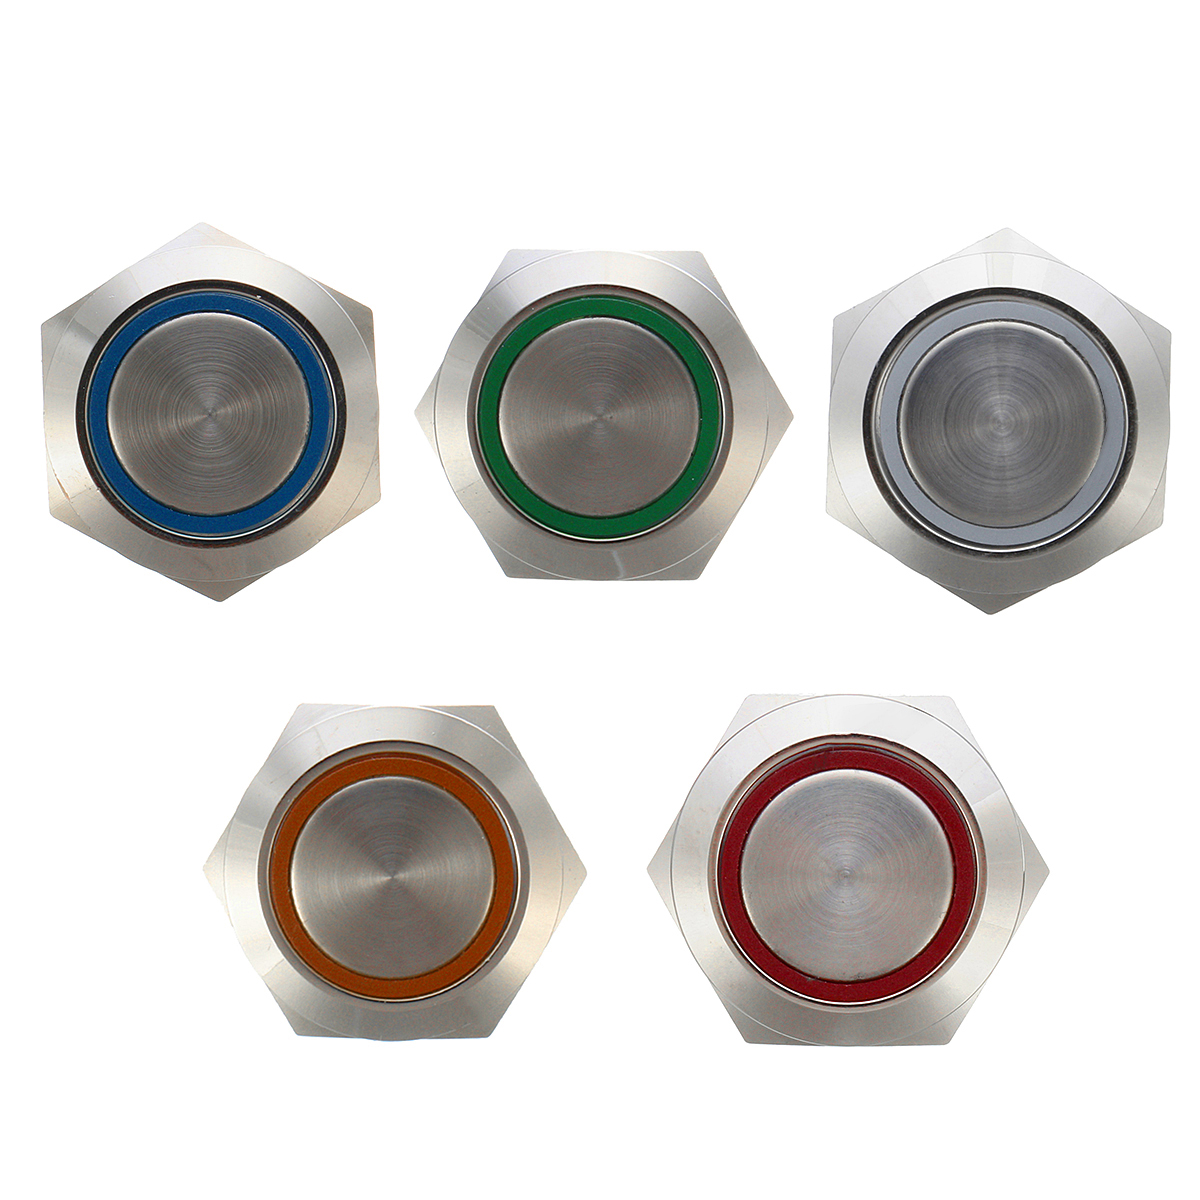 12V 5 Pin 19mm Led Light Stainless Steel Push Button Mo